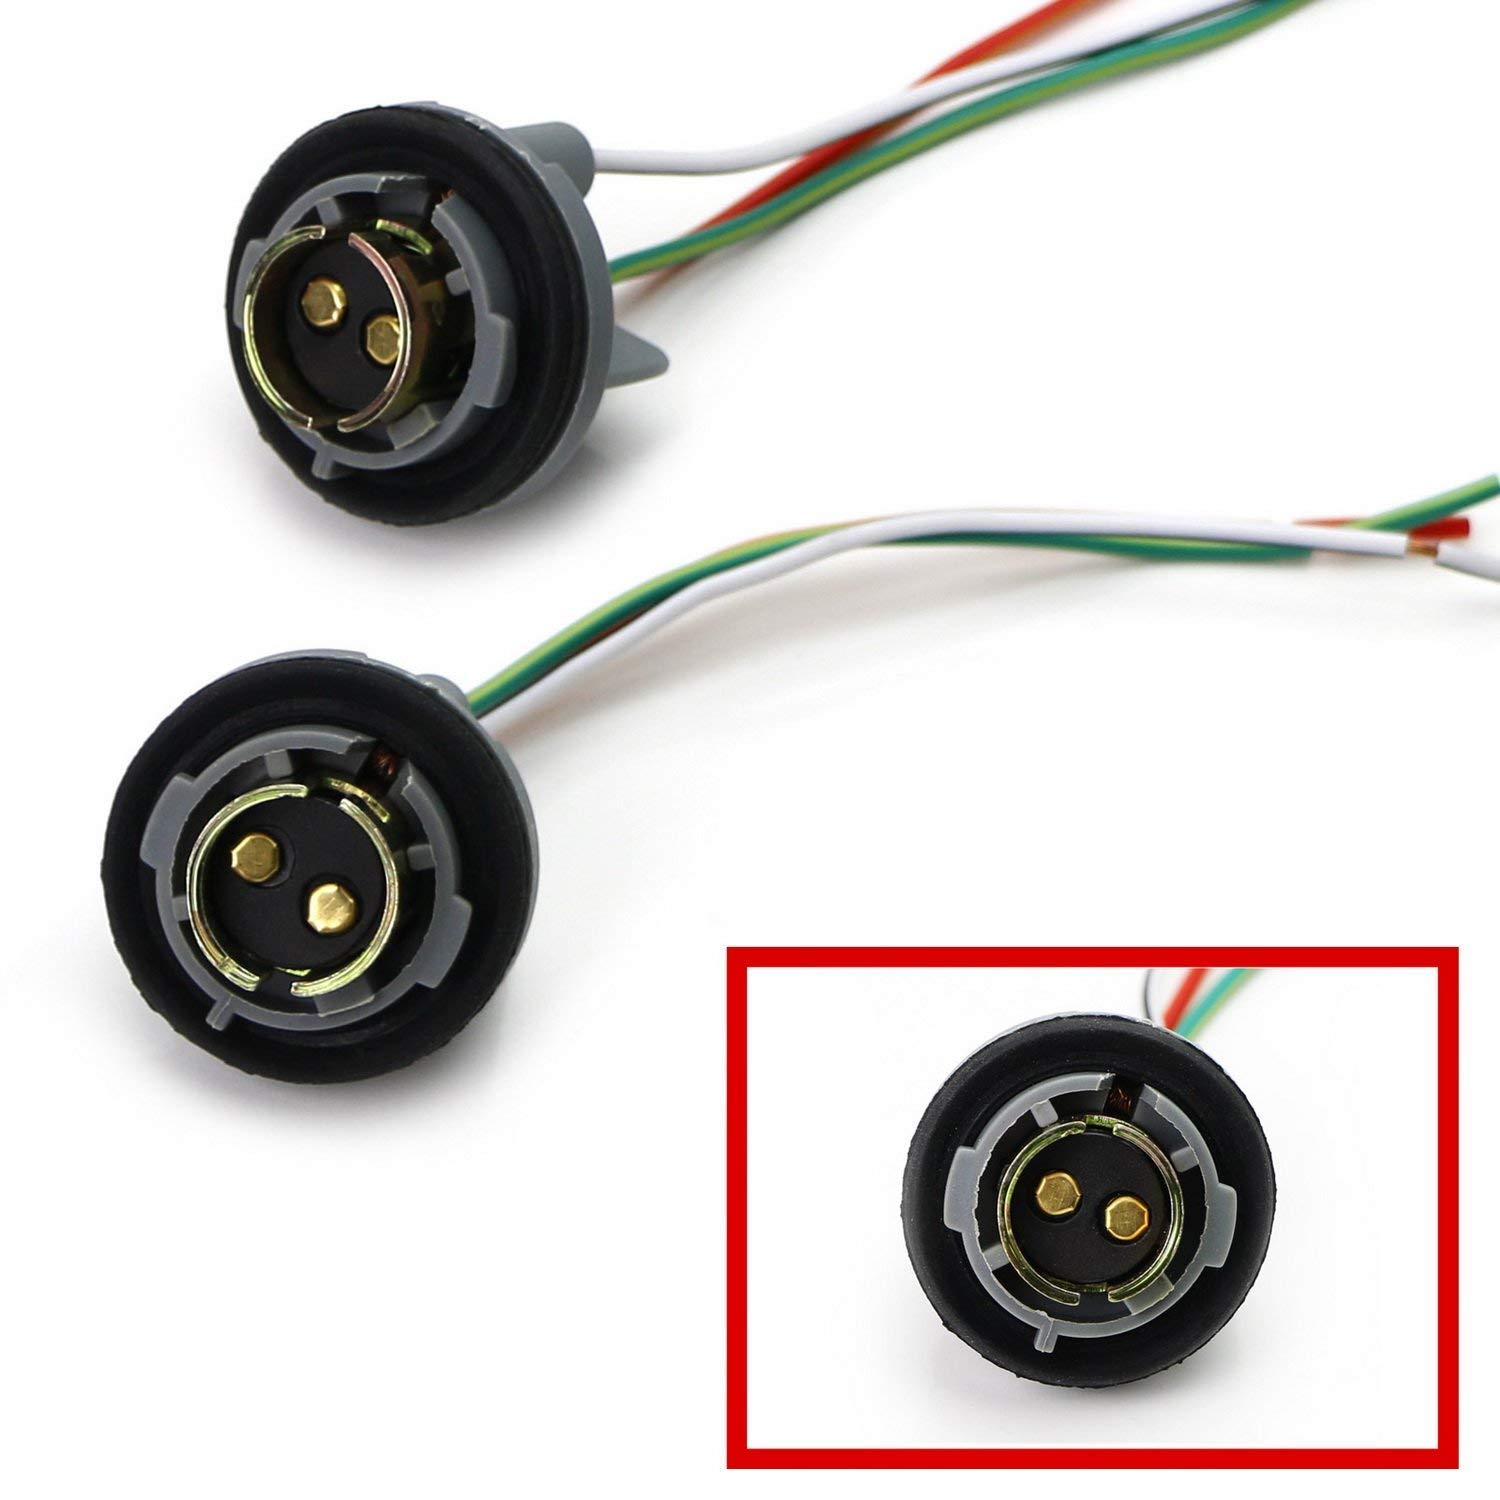 Brake//Tail Lights or LED Bulbs Retrofit 1157 2057 2357 7528 Metal Socket//Base w//Pigtail Wiring Harness For Turn Signal etc 2 iJDMTOY